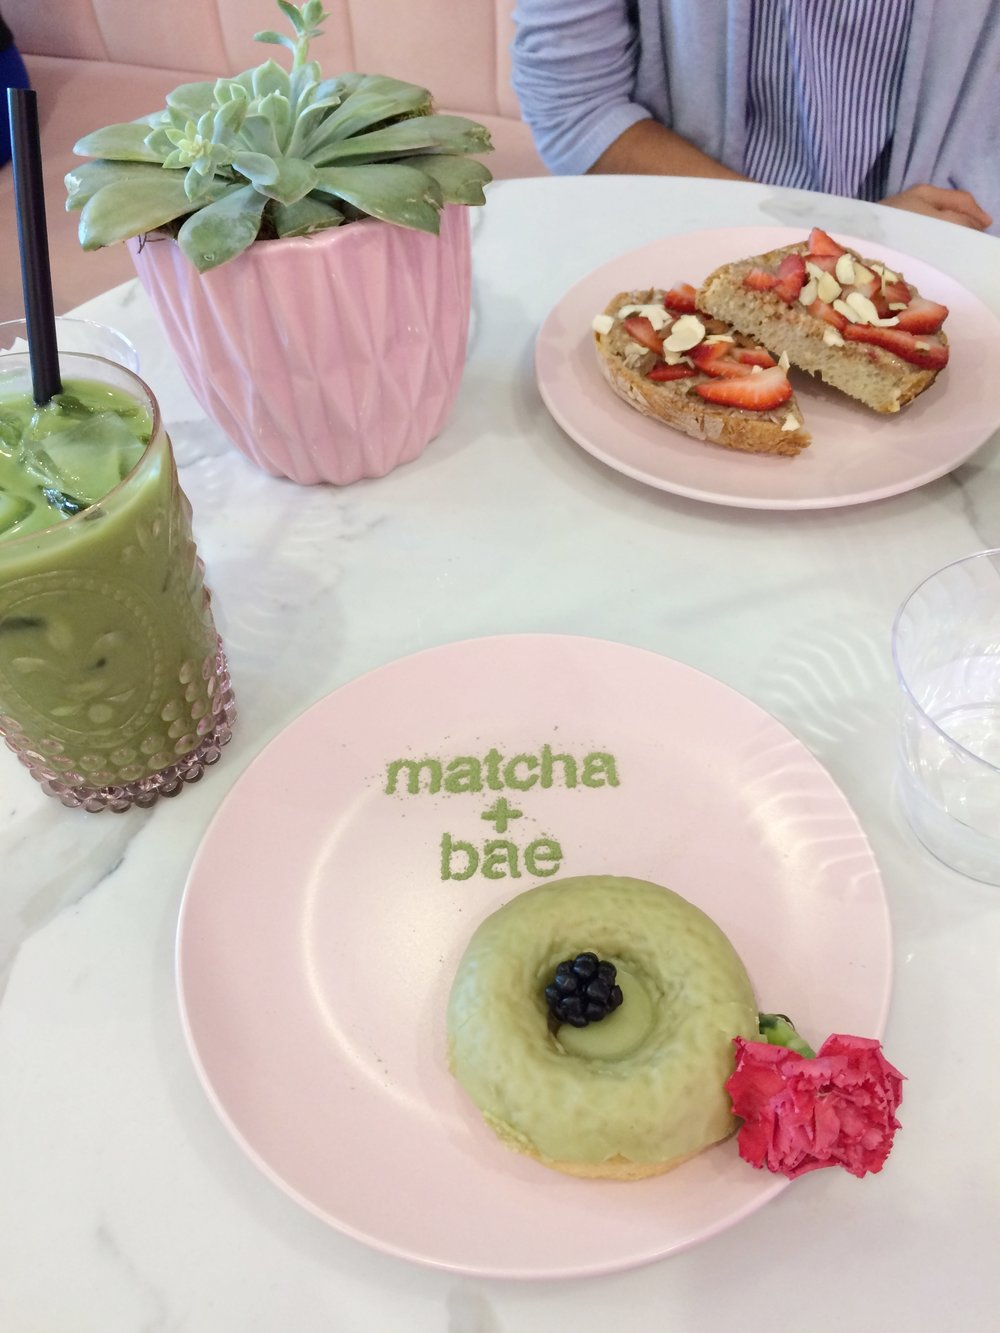 If you live in San Diego, visit Holly Matcha, they have everything Matcha. From Matcha lattes to Matcha donuts.